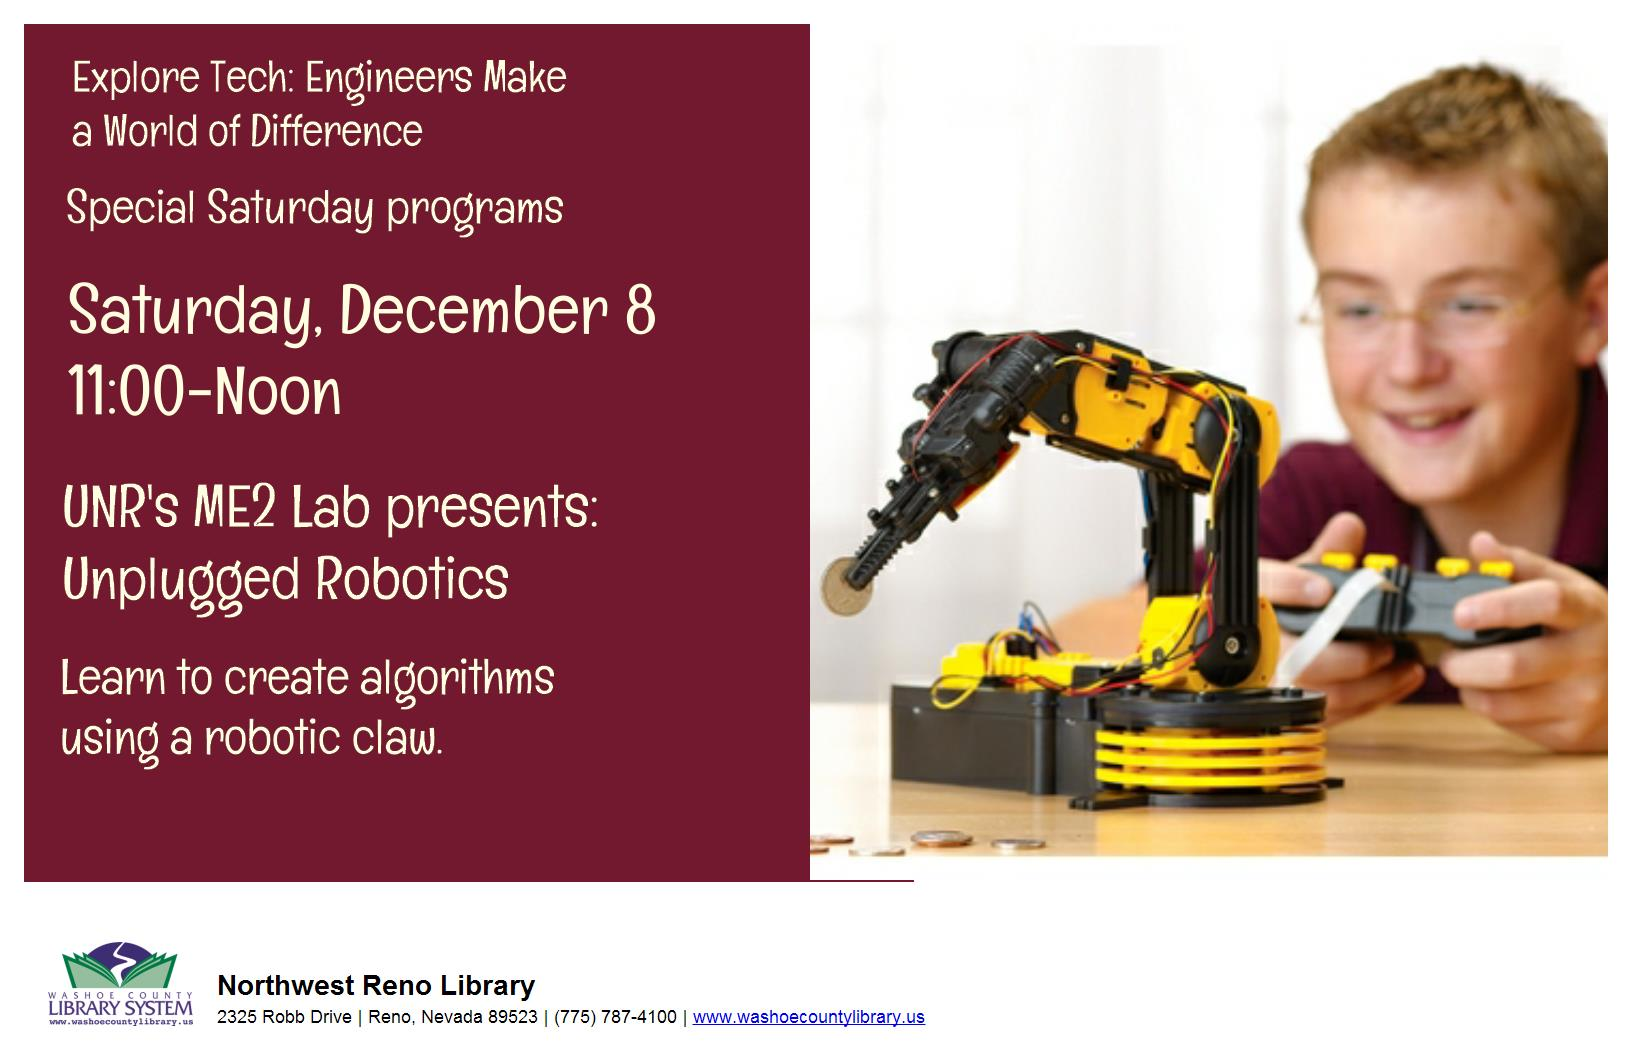 ME2 Lab Presents: Unplugged Robotics